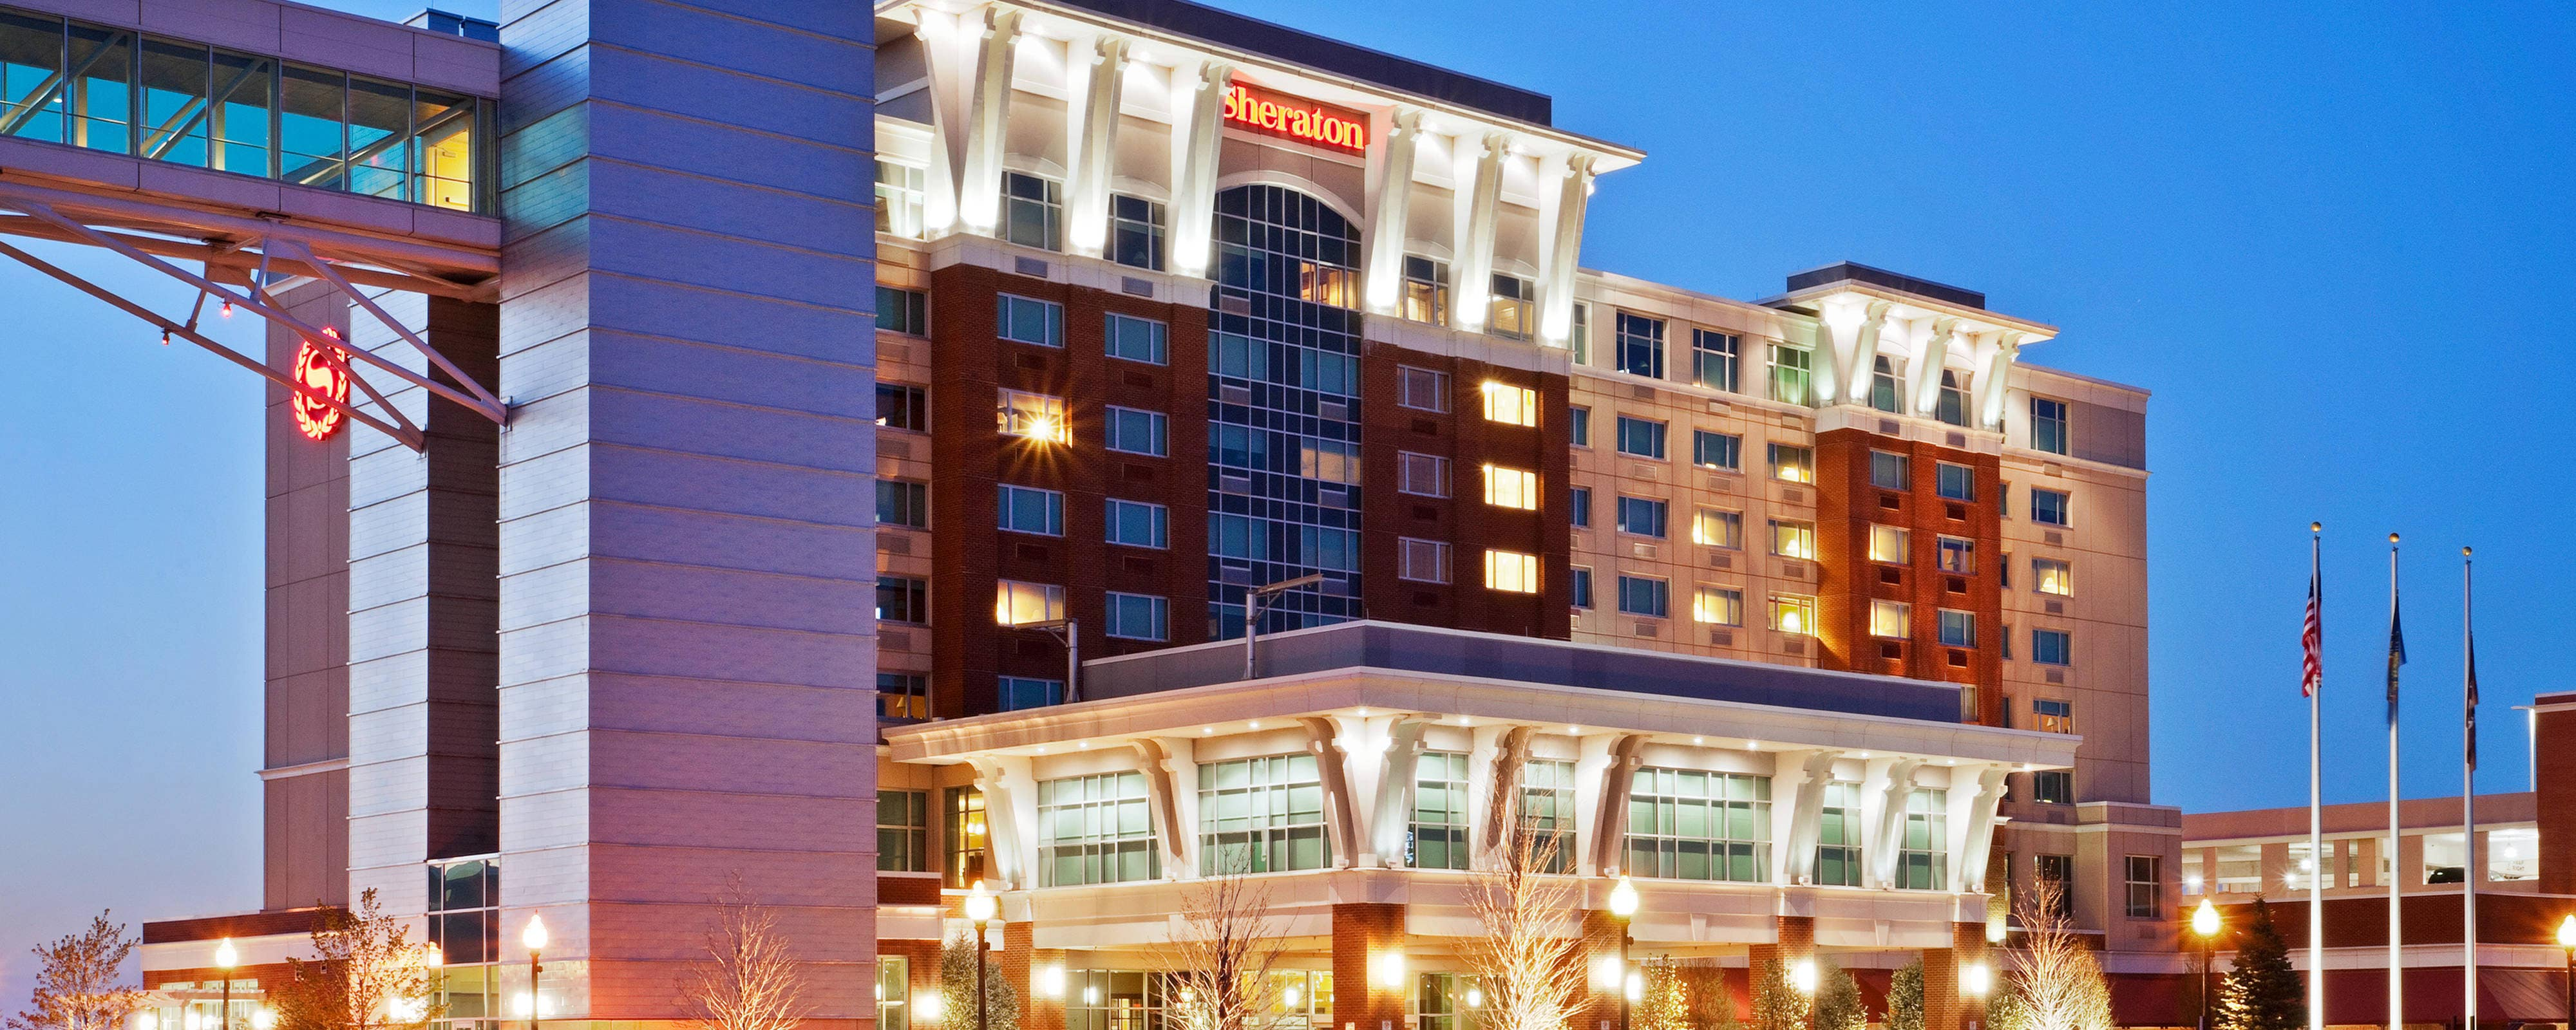 Hotels In Erie Pa >> Erie Pa Bayfront Hotel Sheraton Erie Bayfront Hotel